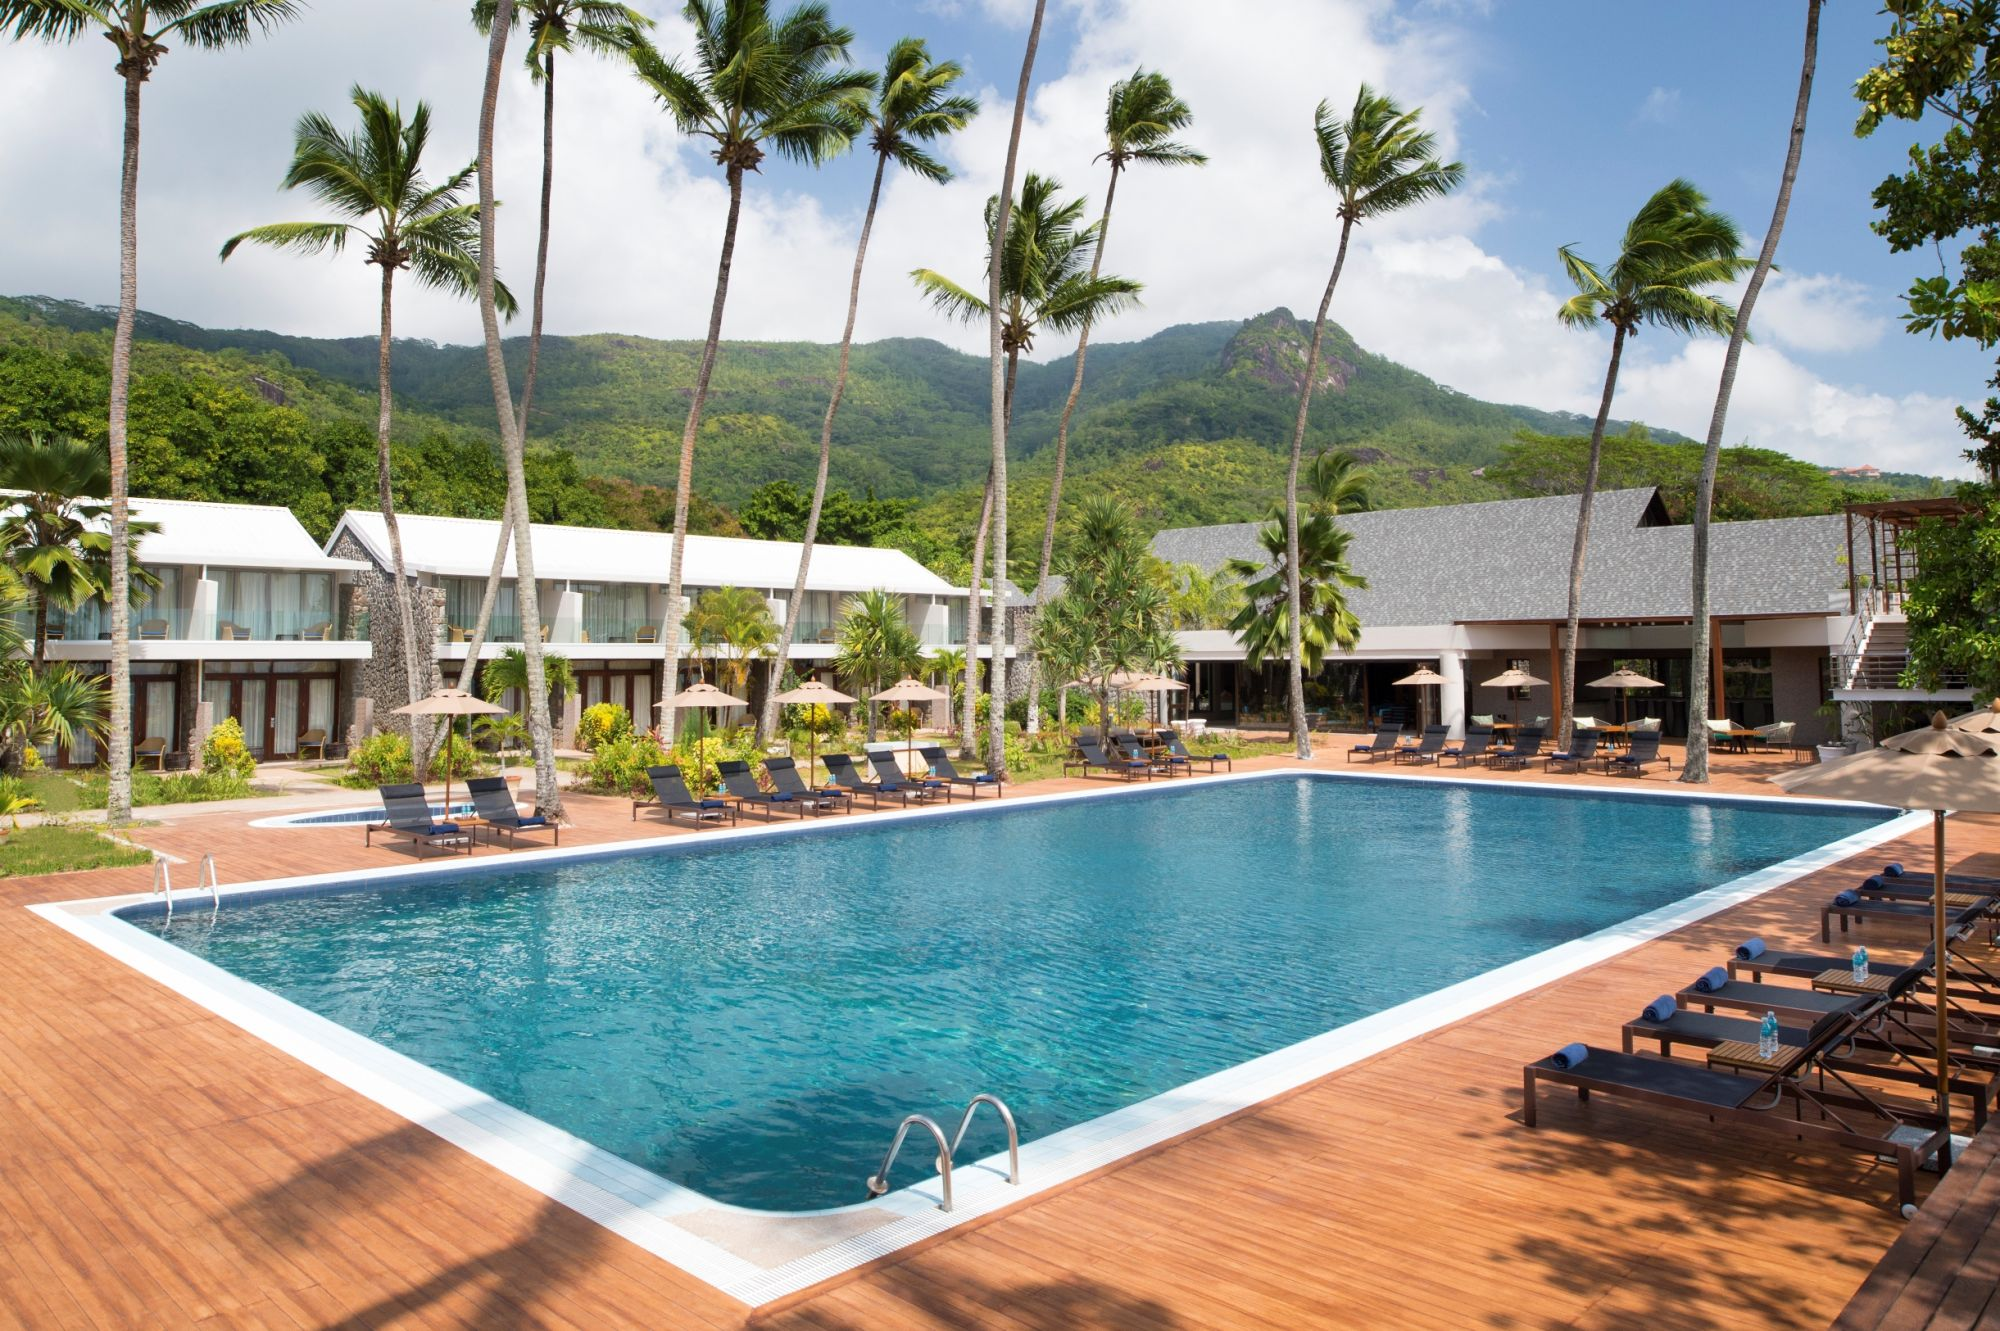 AVANI_Seychelles_Pool_With_Mountain_Backdrop